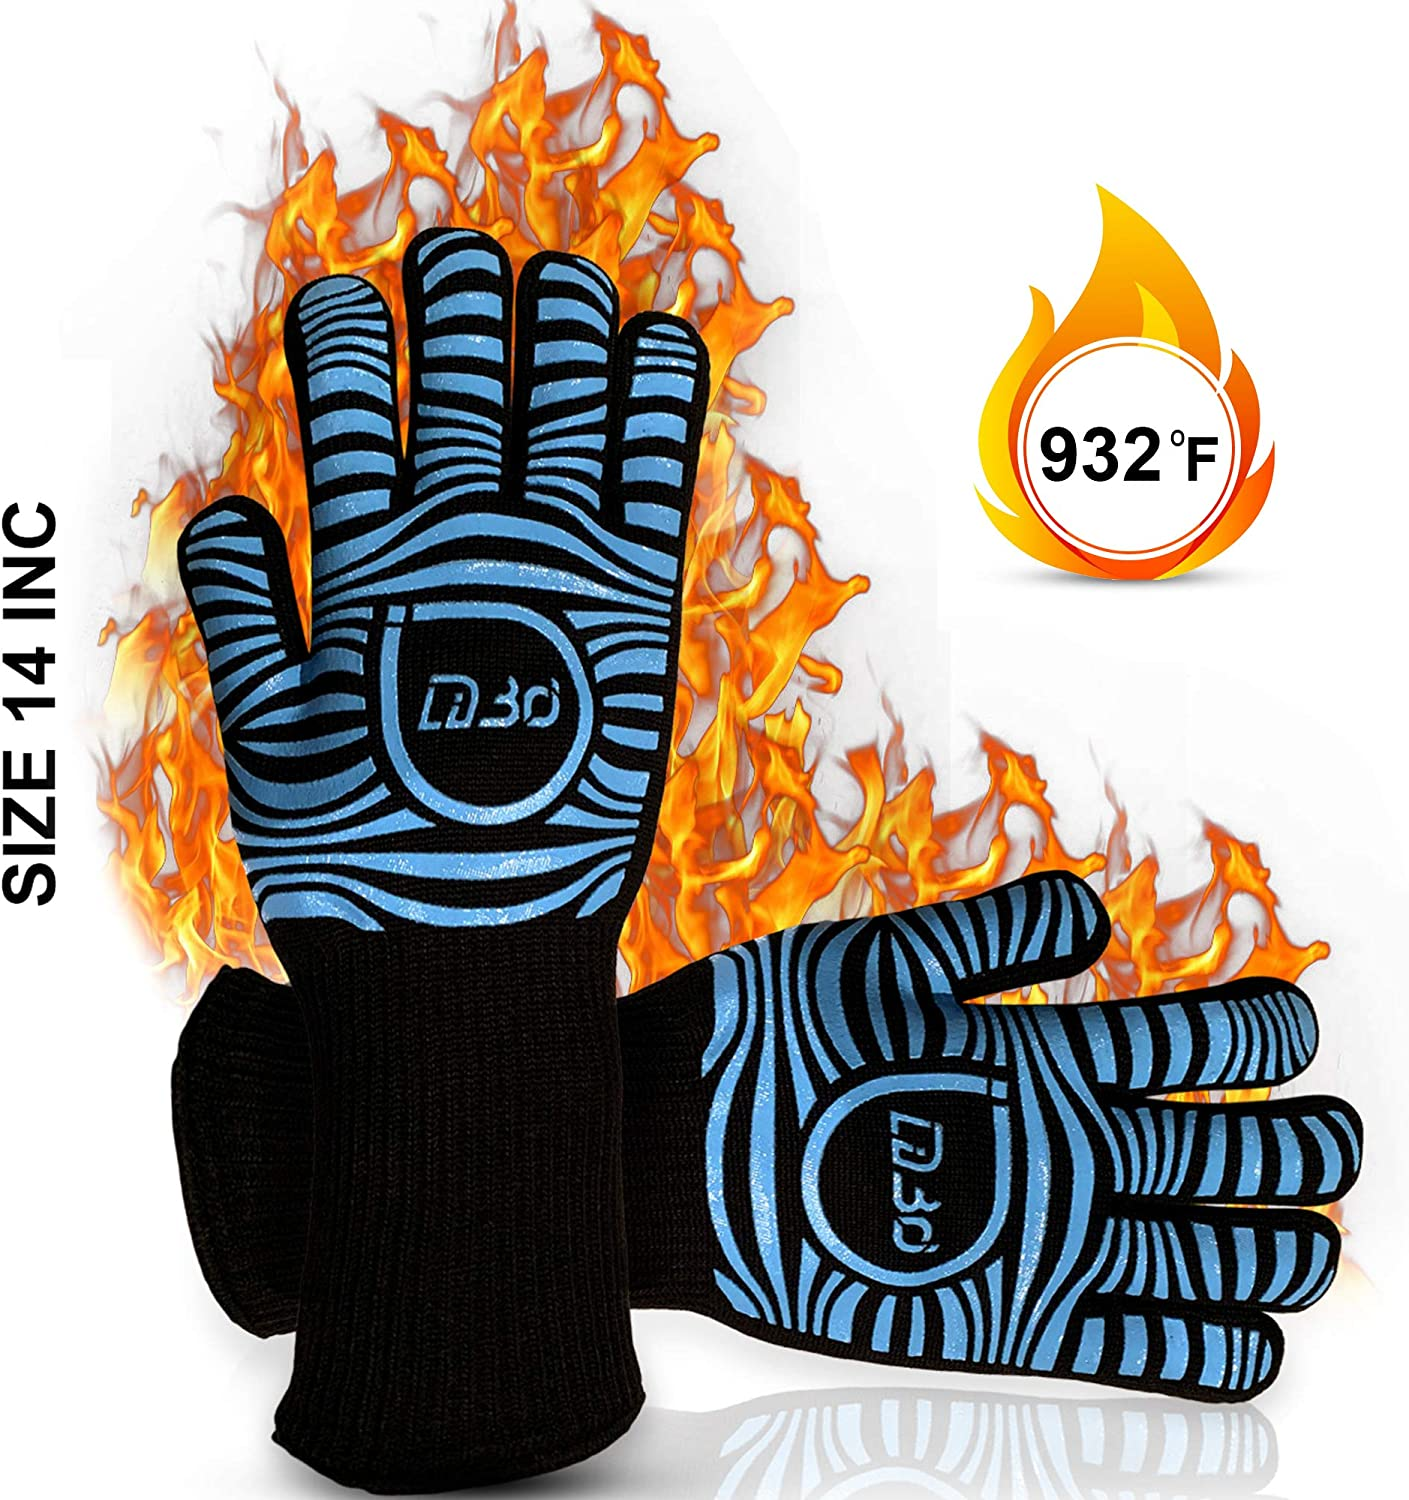 LiBri Heat Resistant BBQ Gloves, Oven Gloves 14 Inch Extreme Heat Resistant Gloves for Grilling, Baking, Smoking, Cooking, Camping, Barbecue-with Long Cuff Extra Wrist Protection 1 Pair